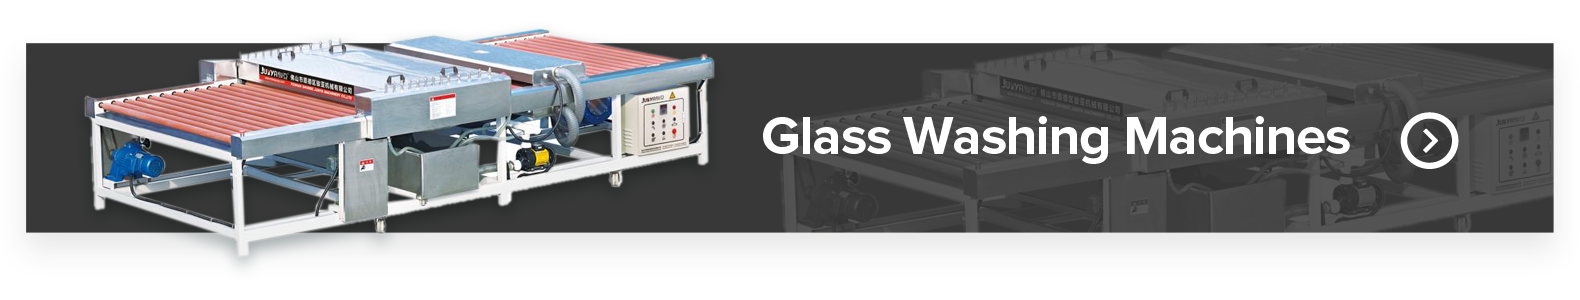 GlassMac Glass Washing Machines